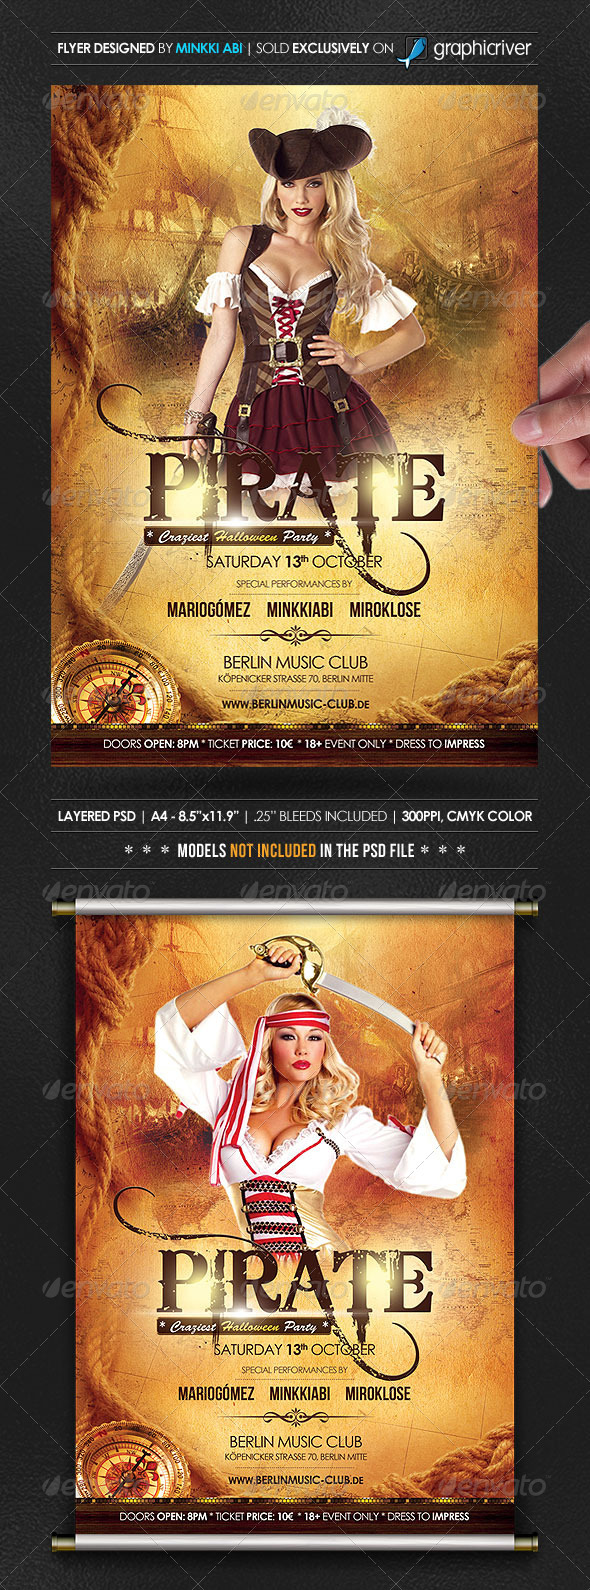 Pirate Flyer Graphics, Designs & Templates from GraphicRiver